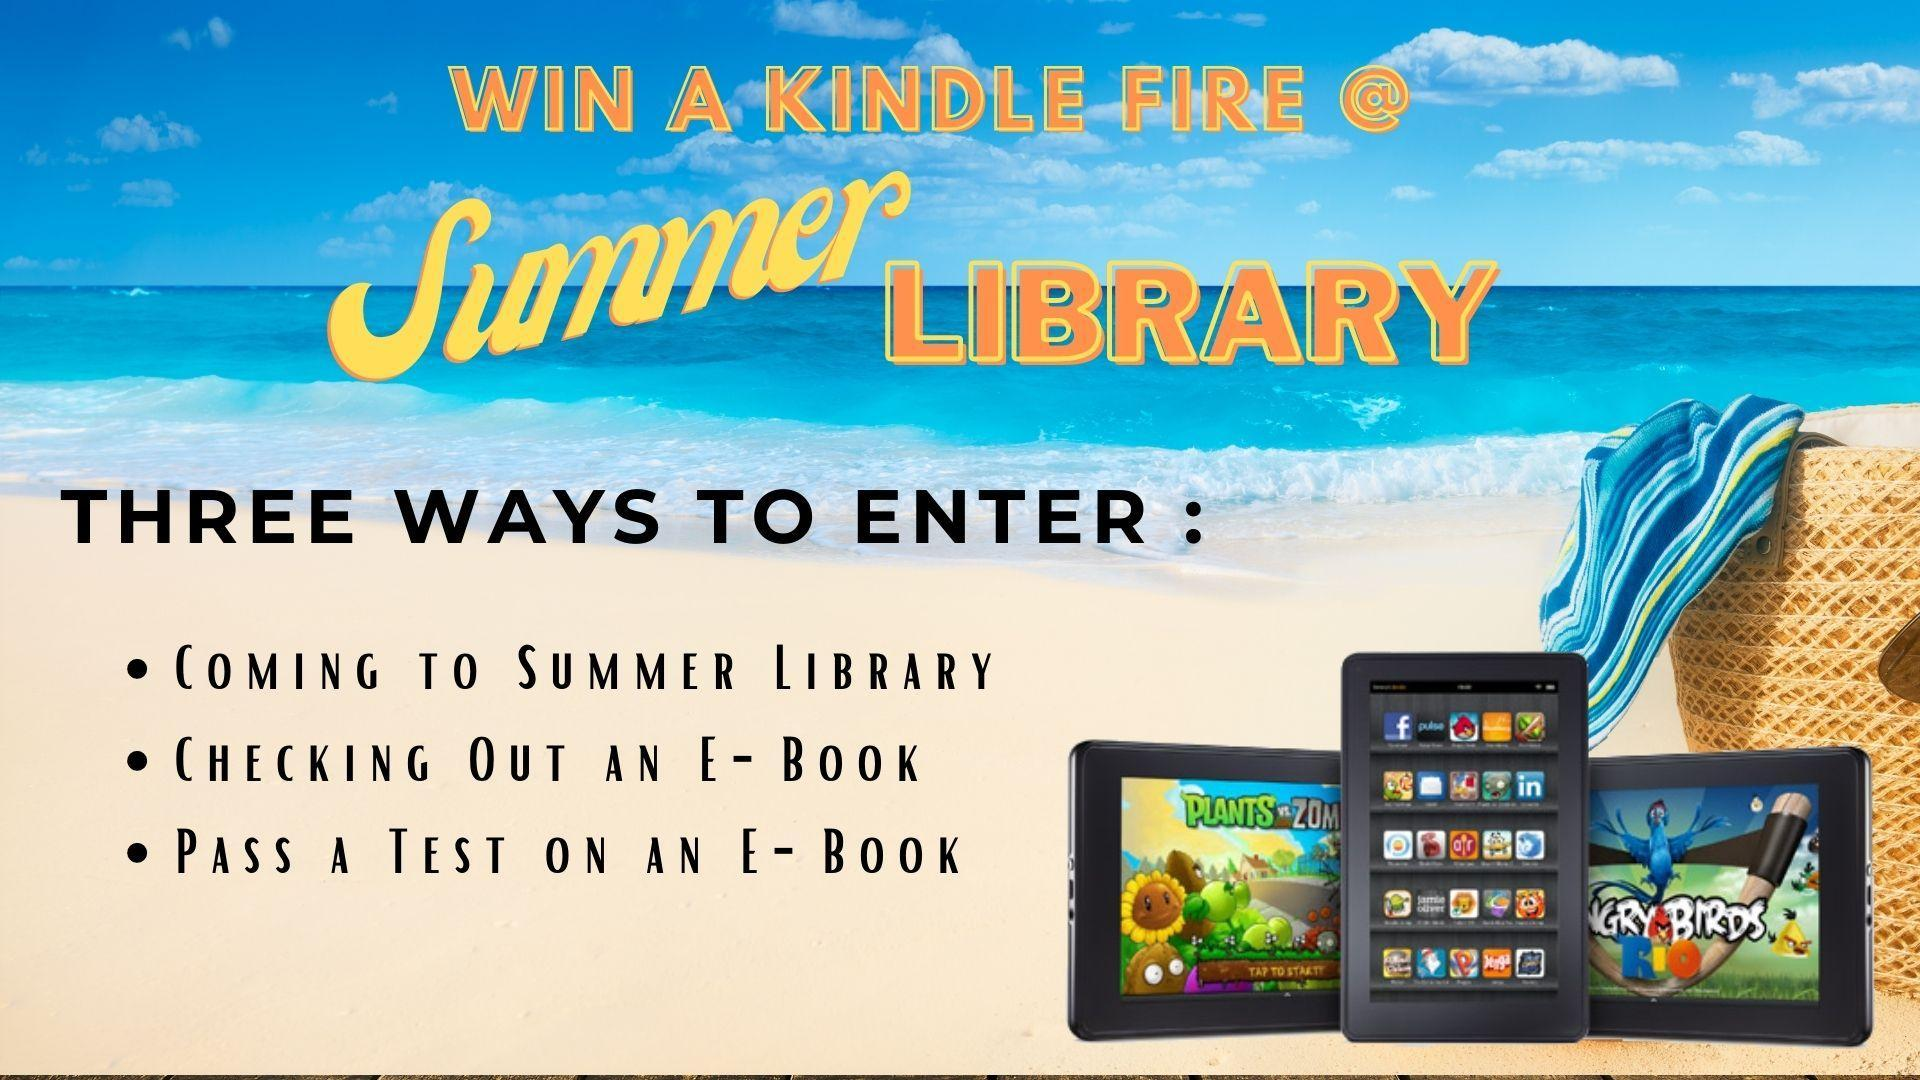 Win a Kindle Fire at Summer Library! Three ways to enter: come to summer library, check out an e-book, and pass a test on an e-book.